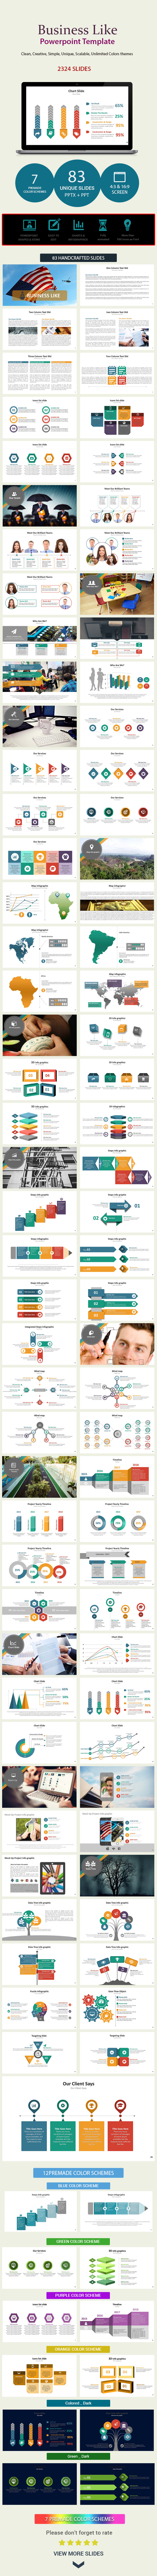 GraphicRiver Business Like Presentation Template 10996229